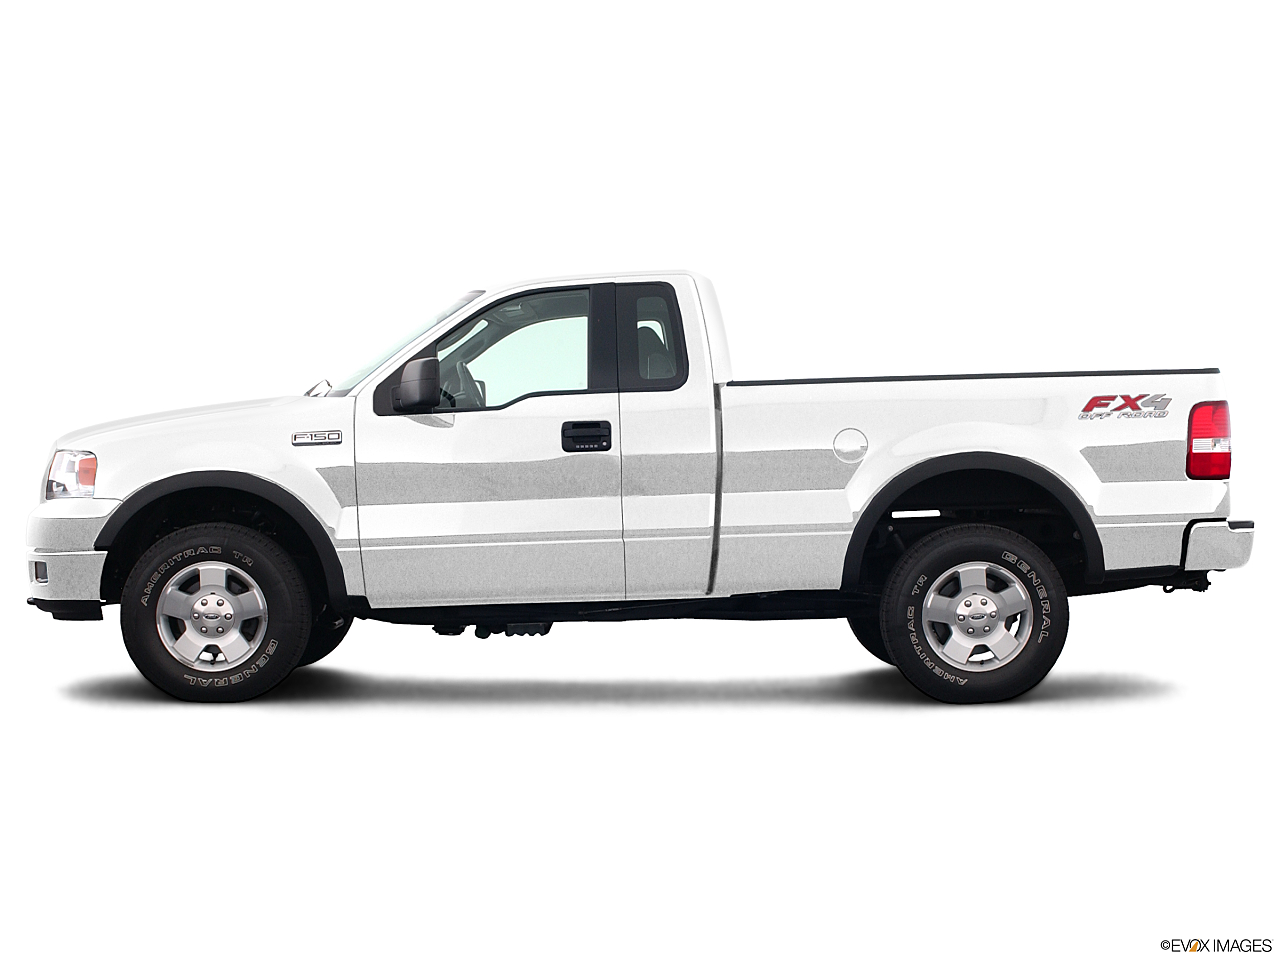 2004 Ford F 150 4dr Supercab Fx4 4wd Flareside 65 Ft Sb Research Sxt Groovecar